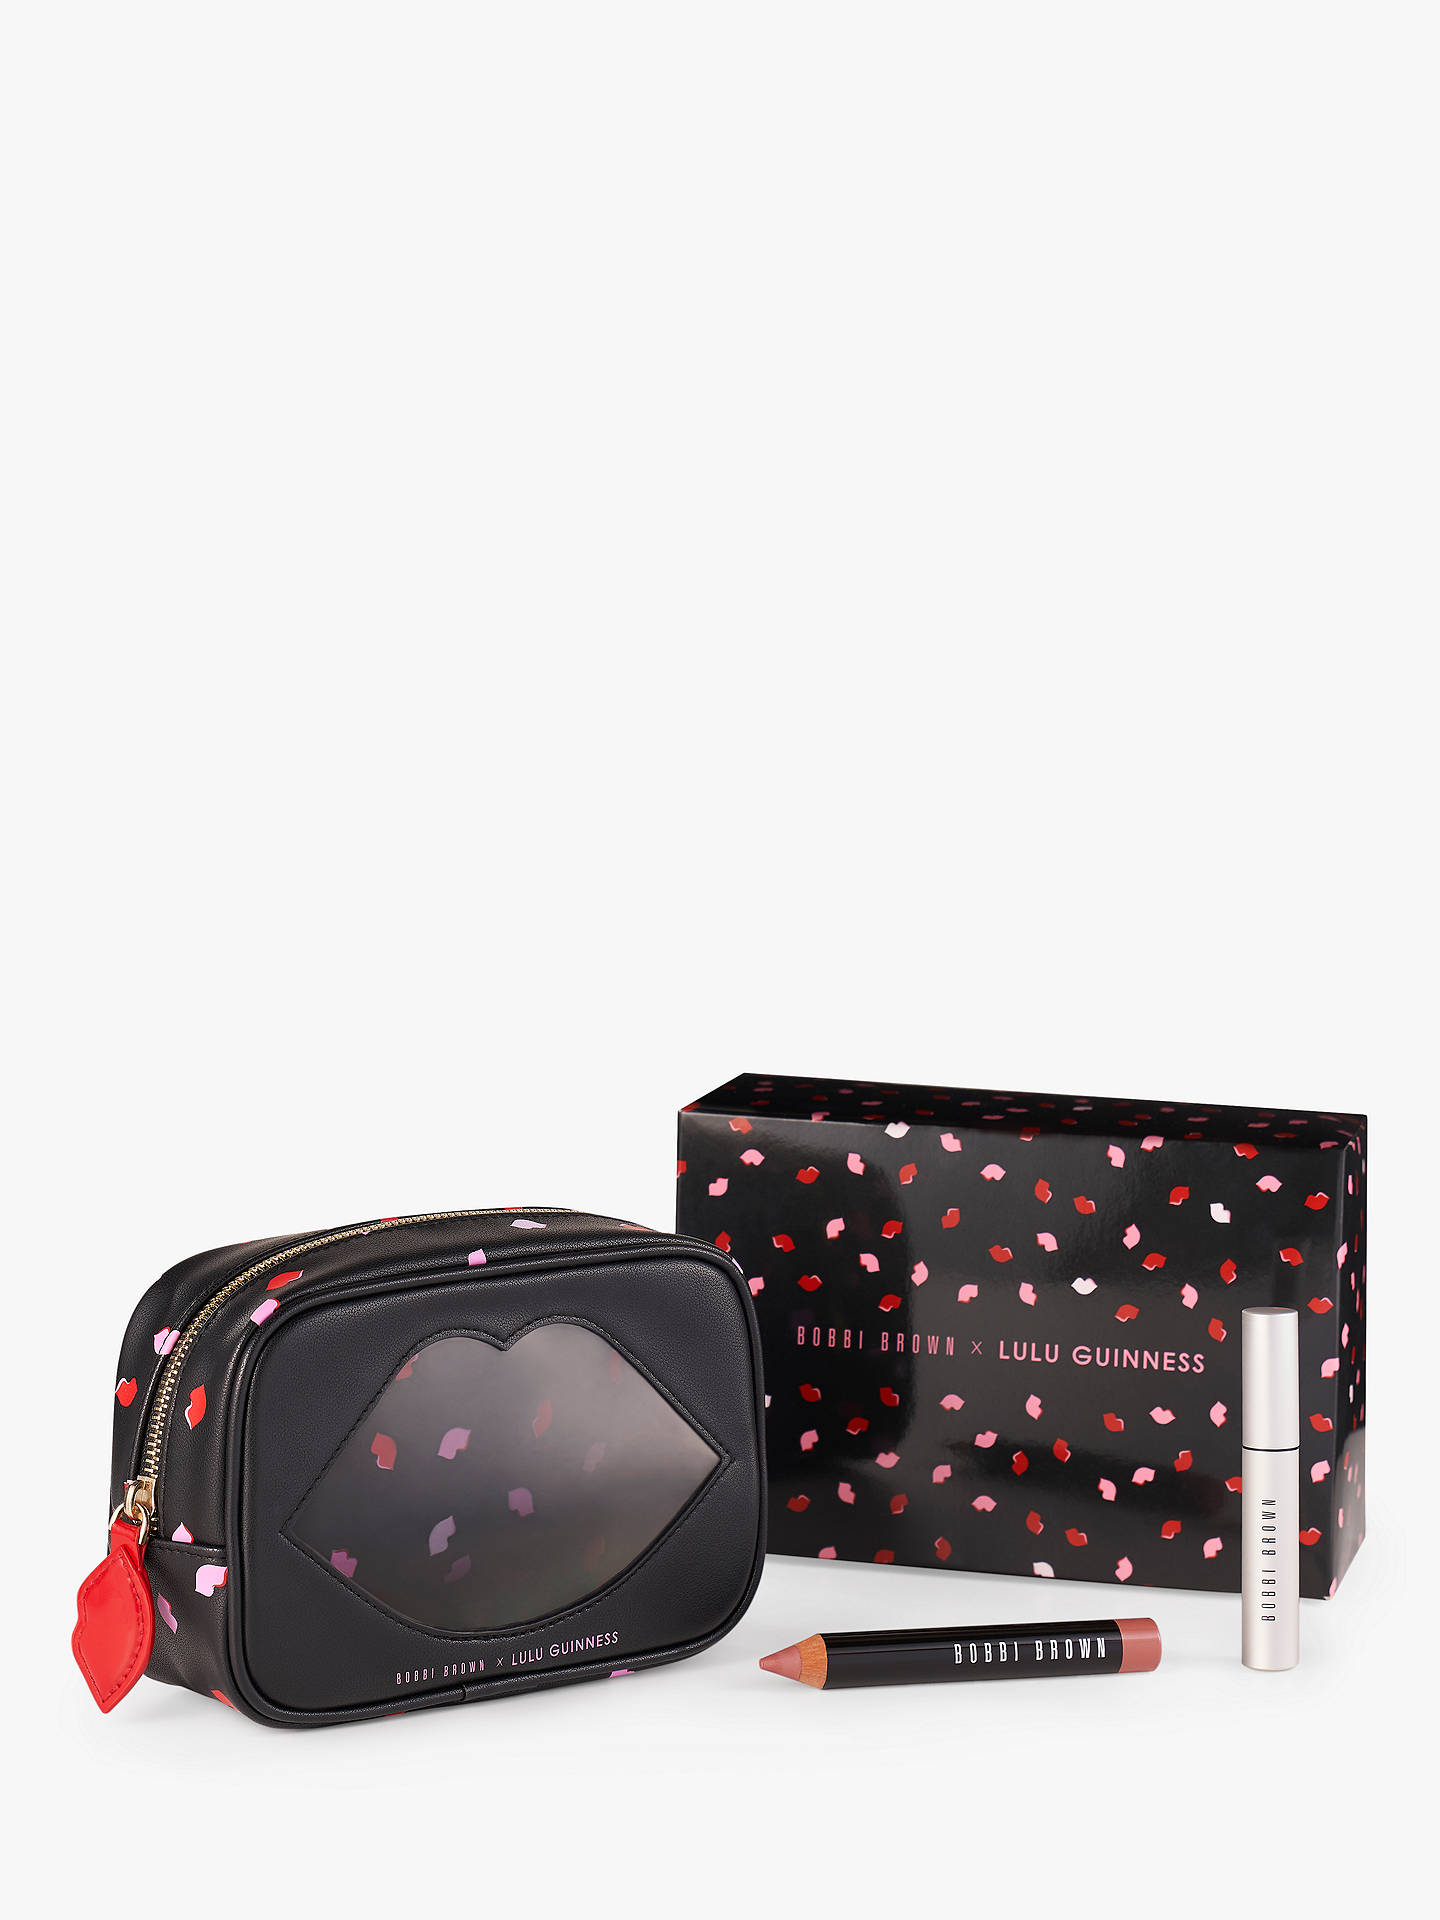 7701ac9947a7 Buy Bobbi Brown x Lulu Guinness The Pretty Powerful Collection Online at  johnlewis.com ...